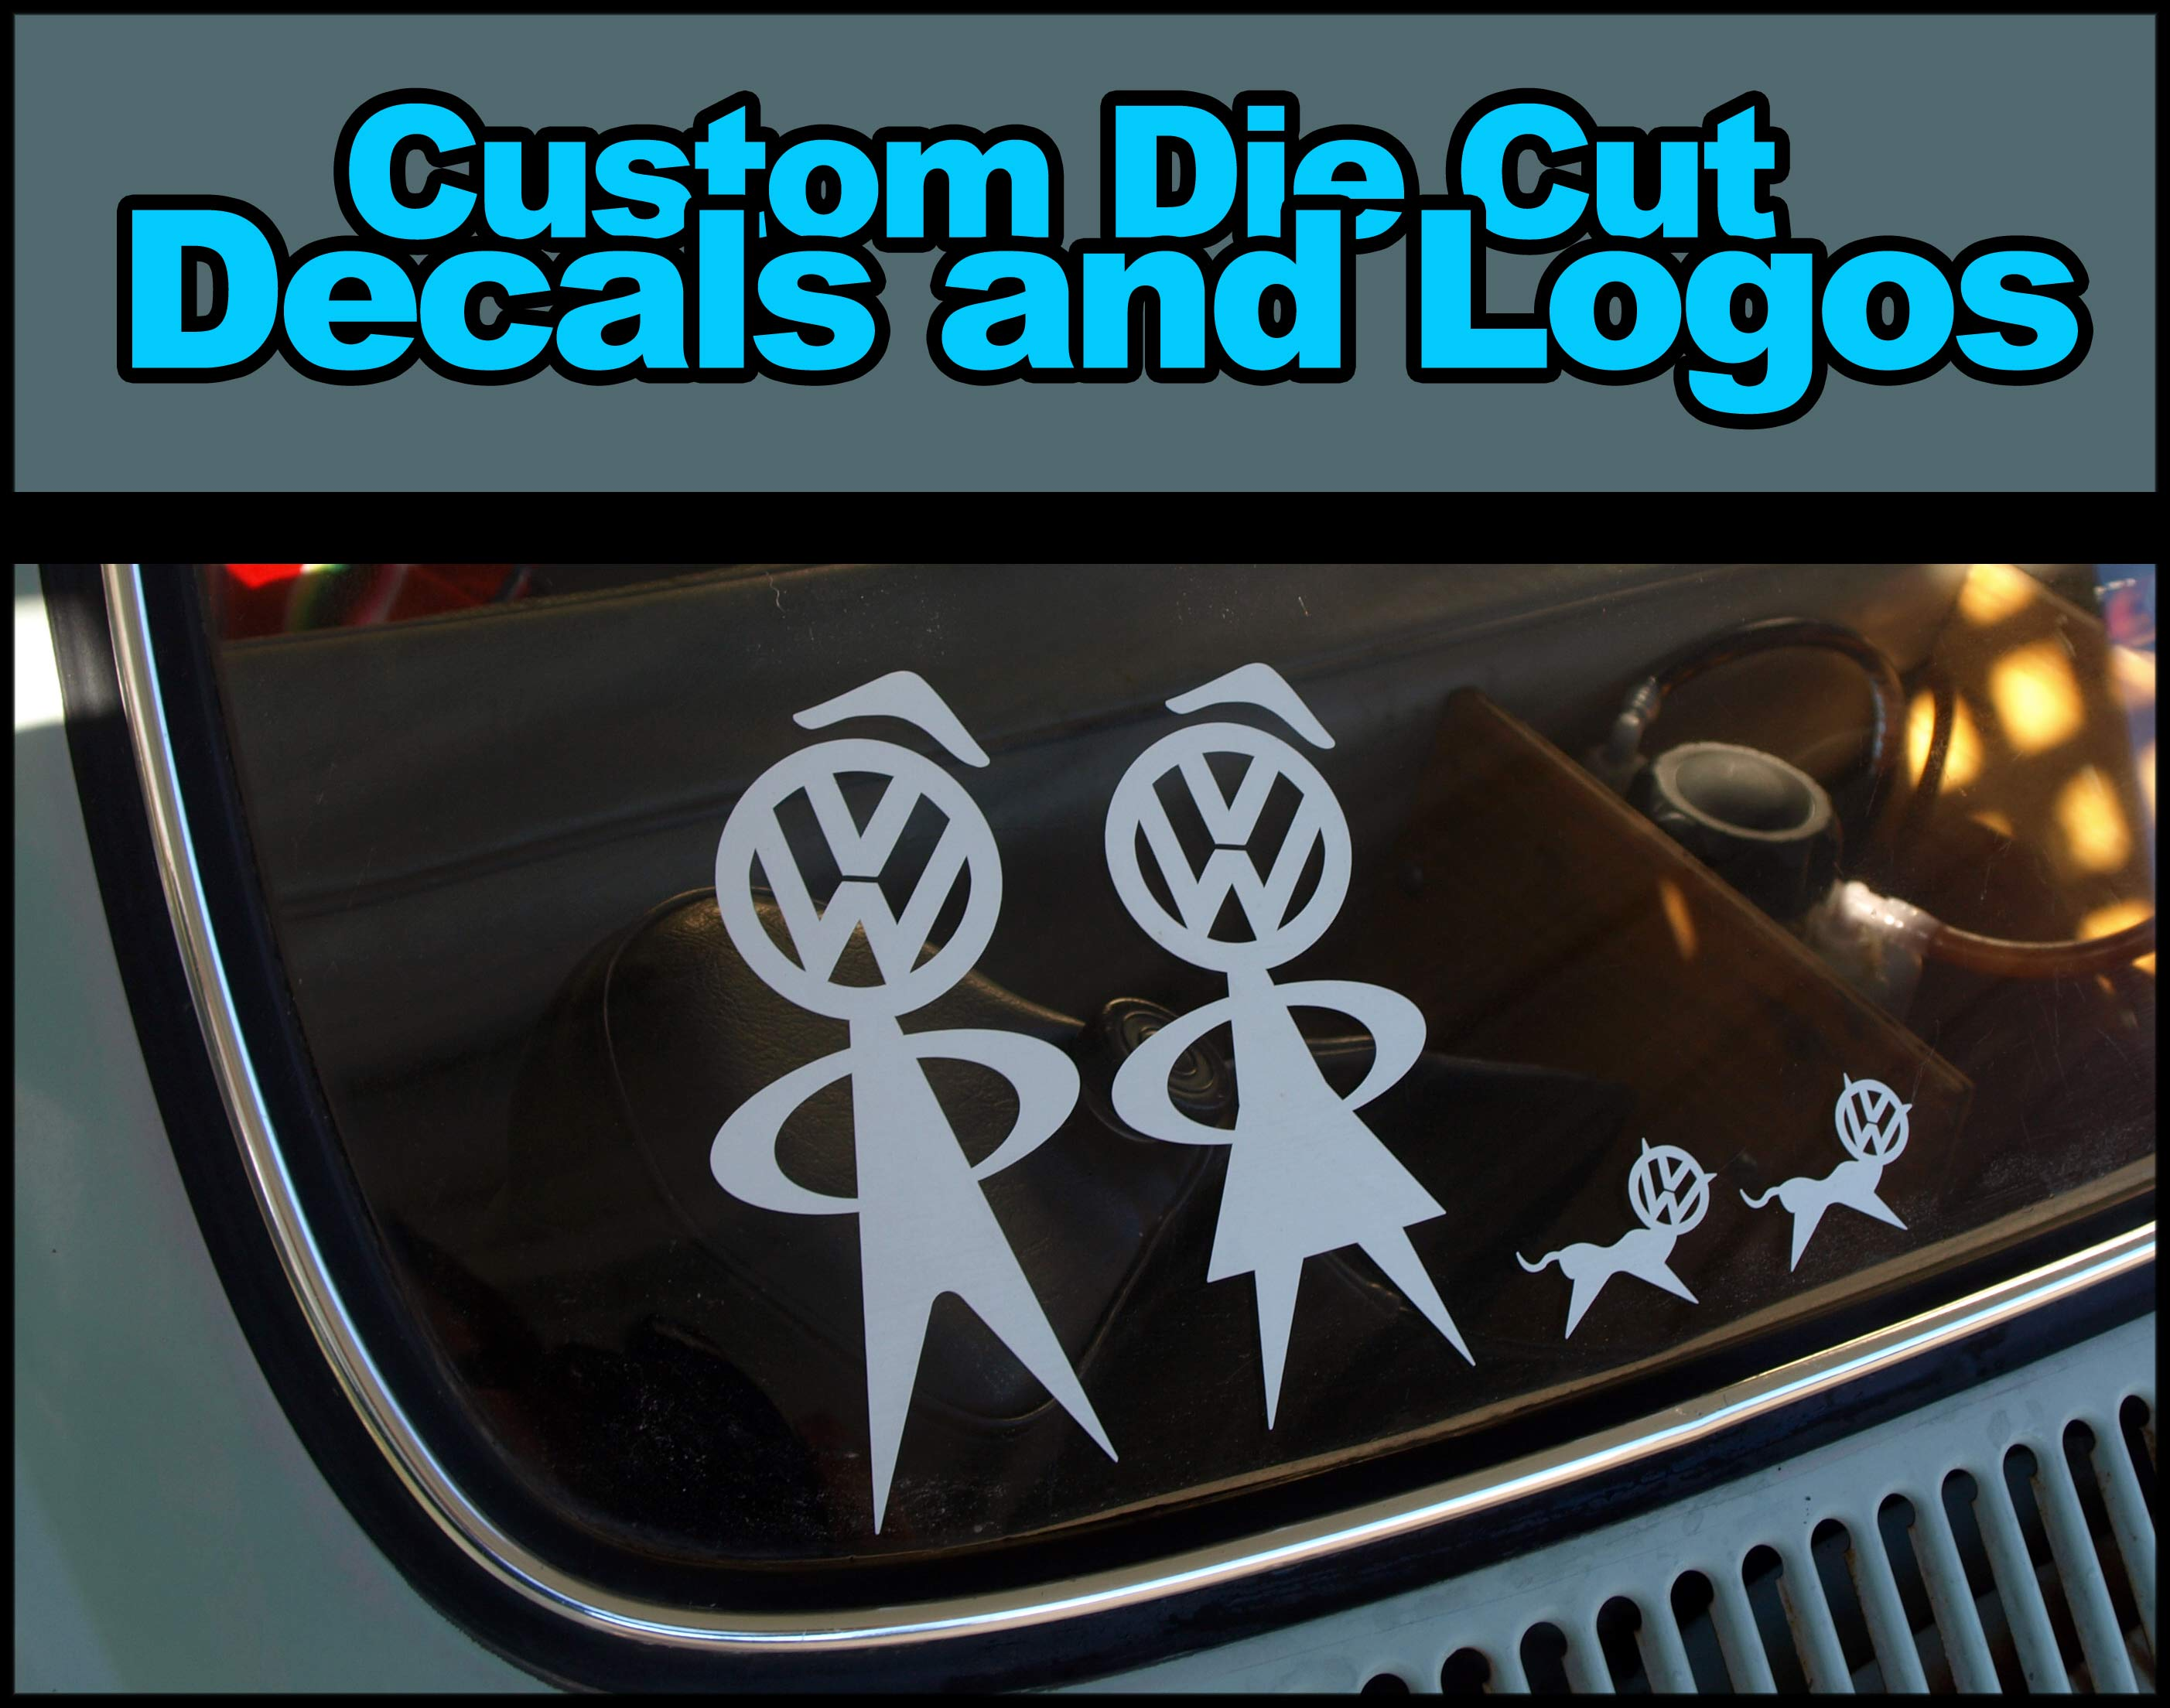 Personalized custom die cut vinyl decals and logos 6 x 6 from stick it die cut stickers